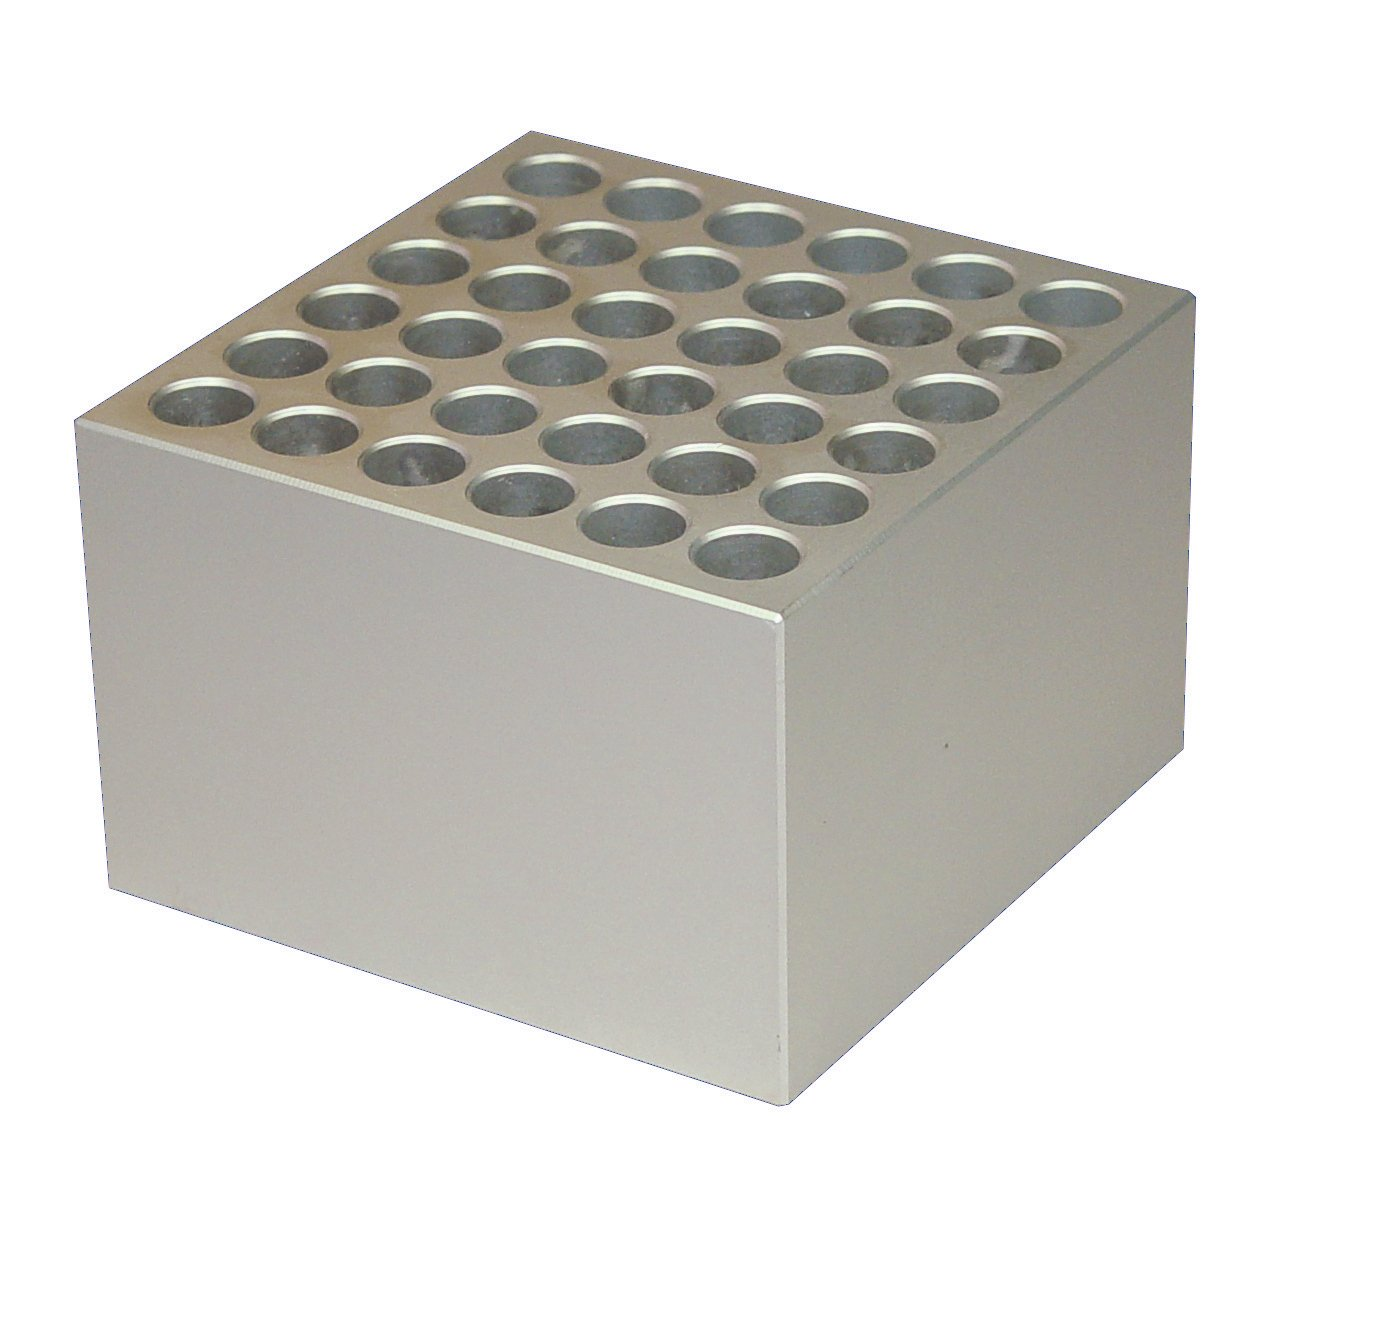 FinePCR AB90-1.5 Aluminum Block for 1.5mL Tubes, Holds 36 Tubes, 3-1/2'' x 2-3/8'' x 3-1/2''